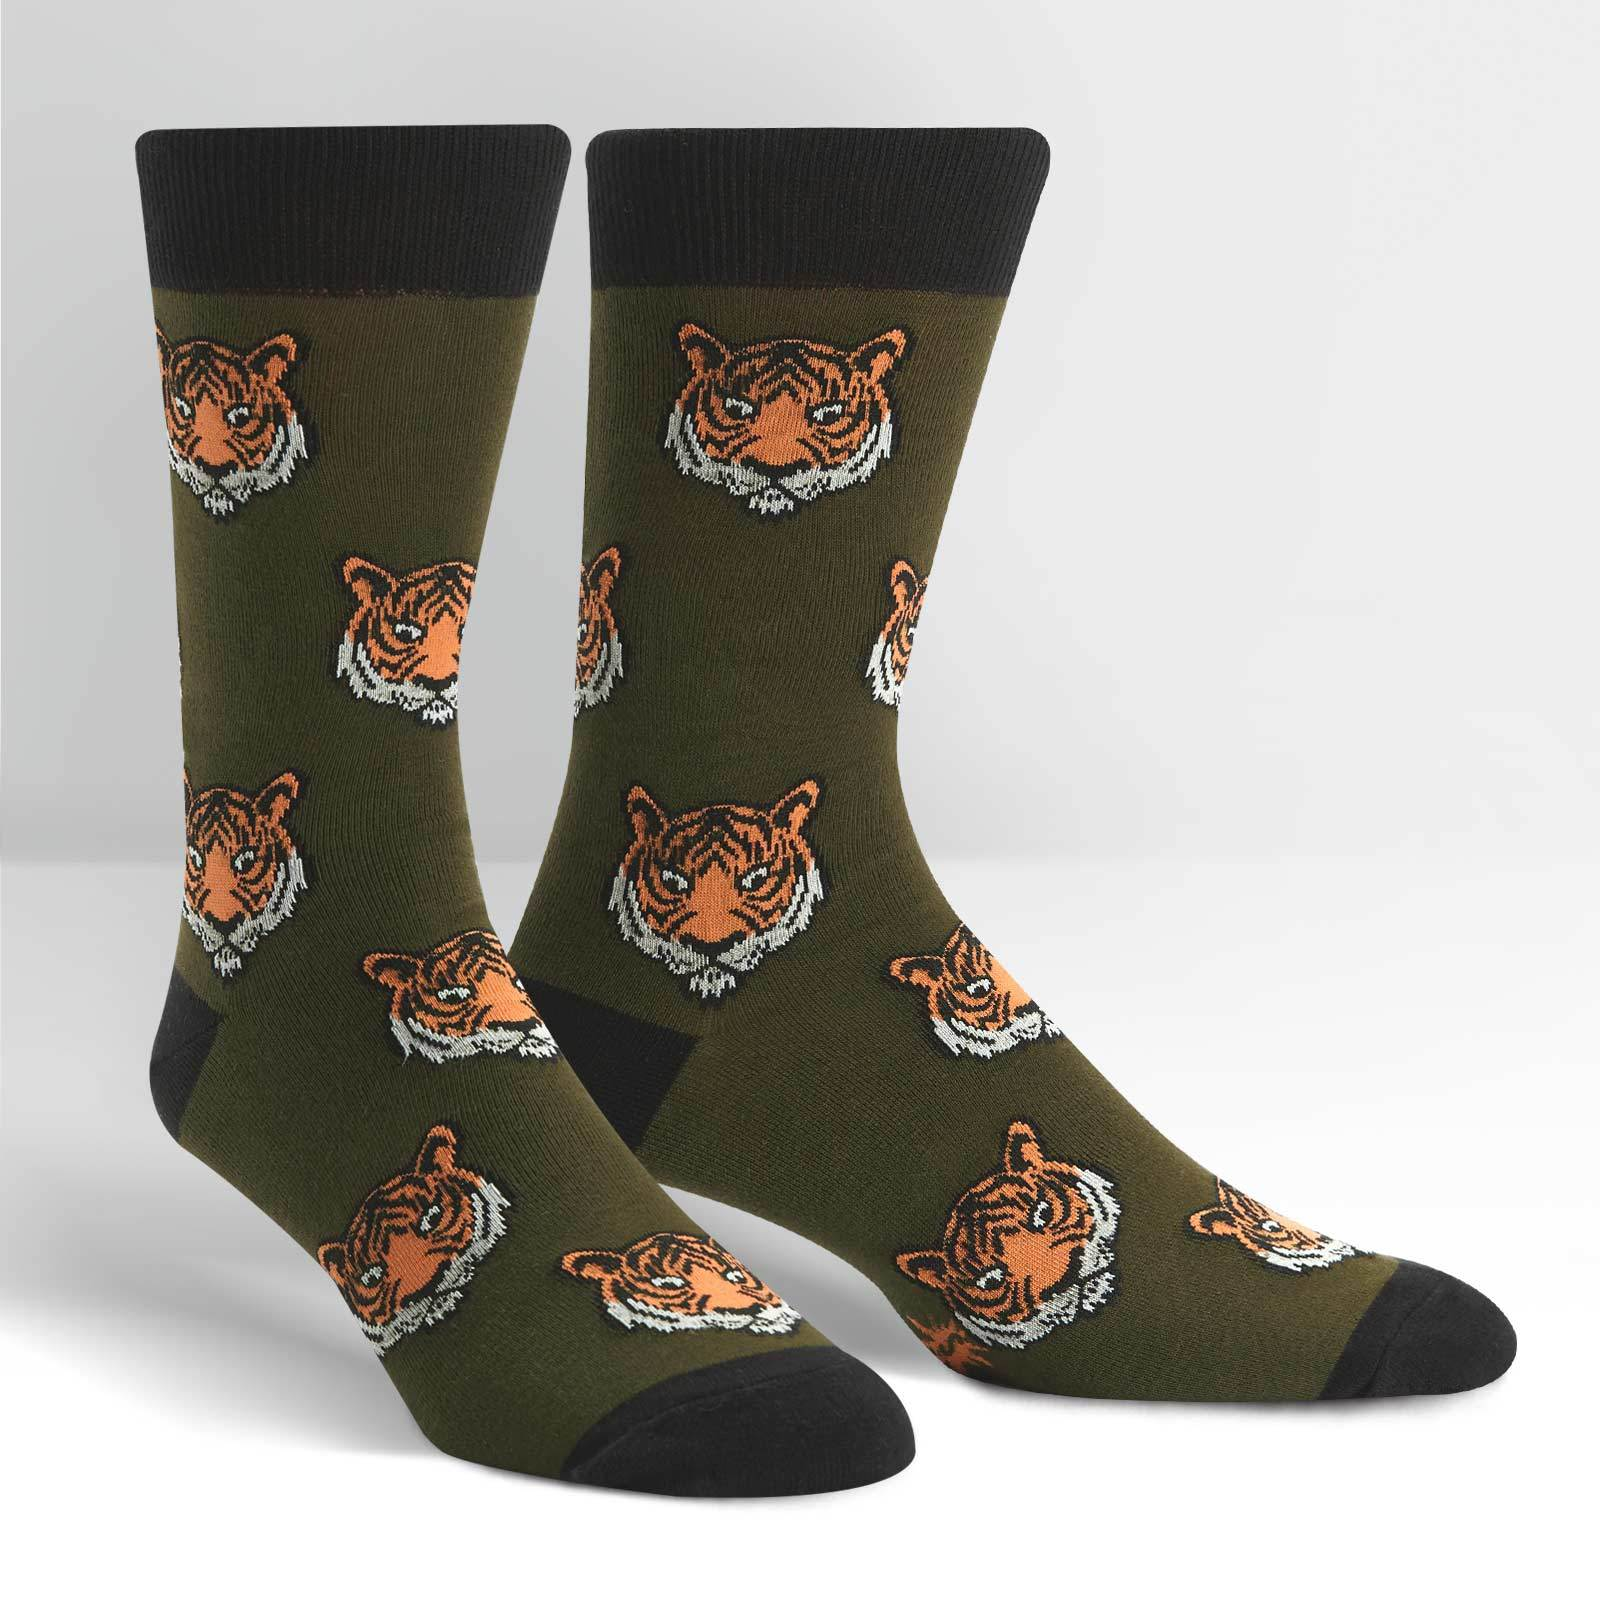 Men's - Fierce Feet Crew Socks image